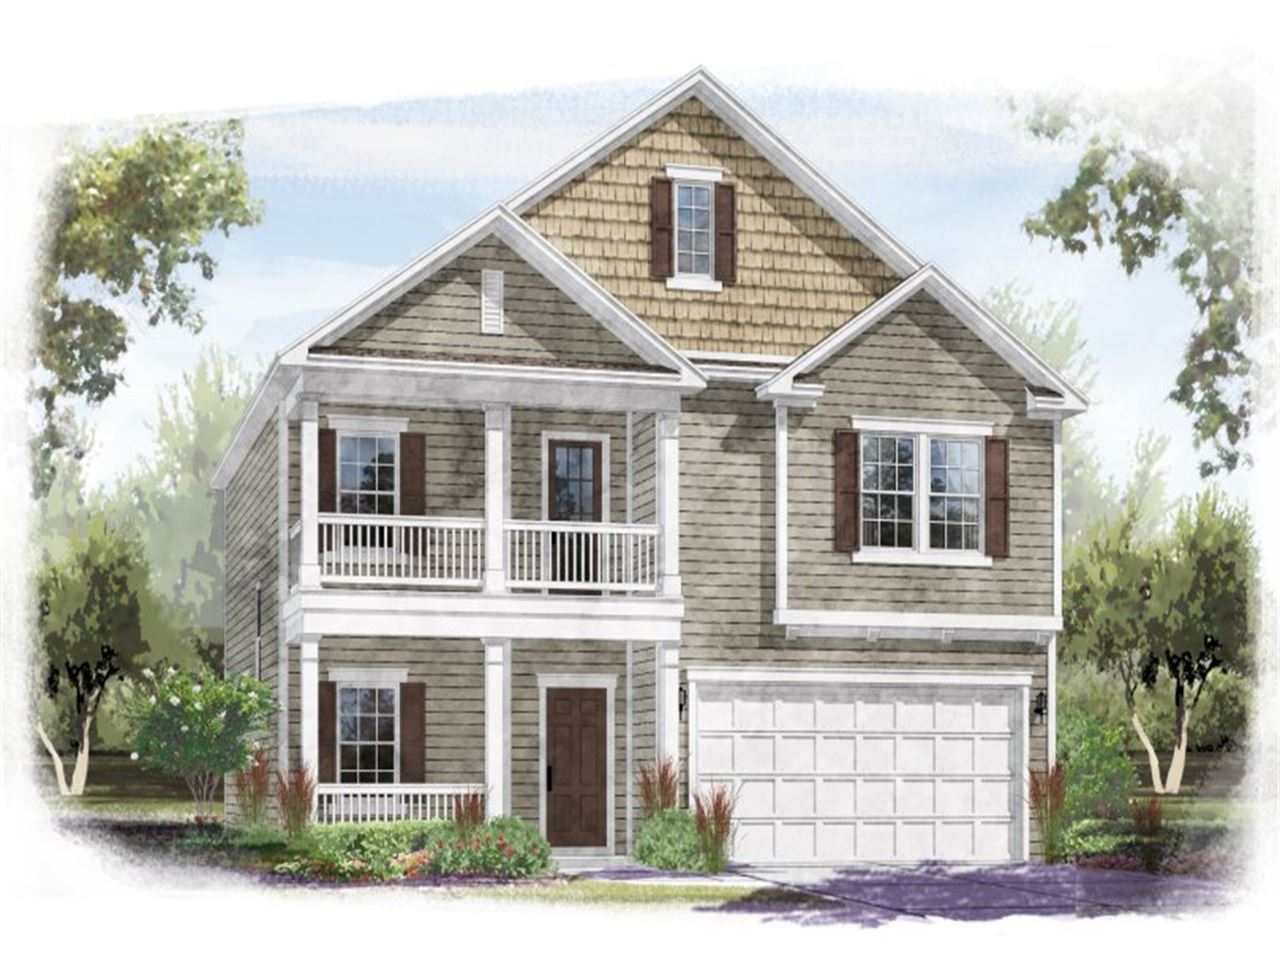 Fletcher - Hucks Landing: Charlotte, NC - Ryland Homes